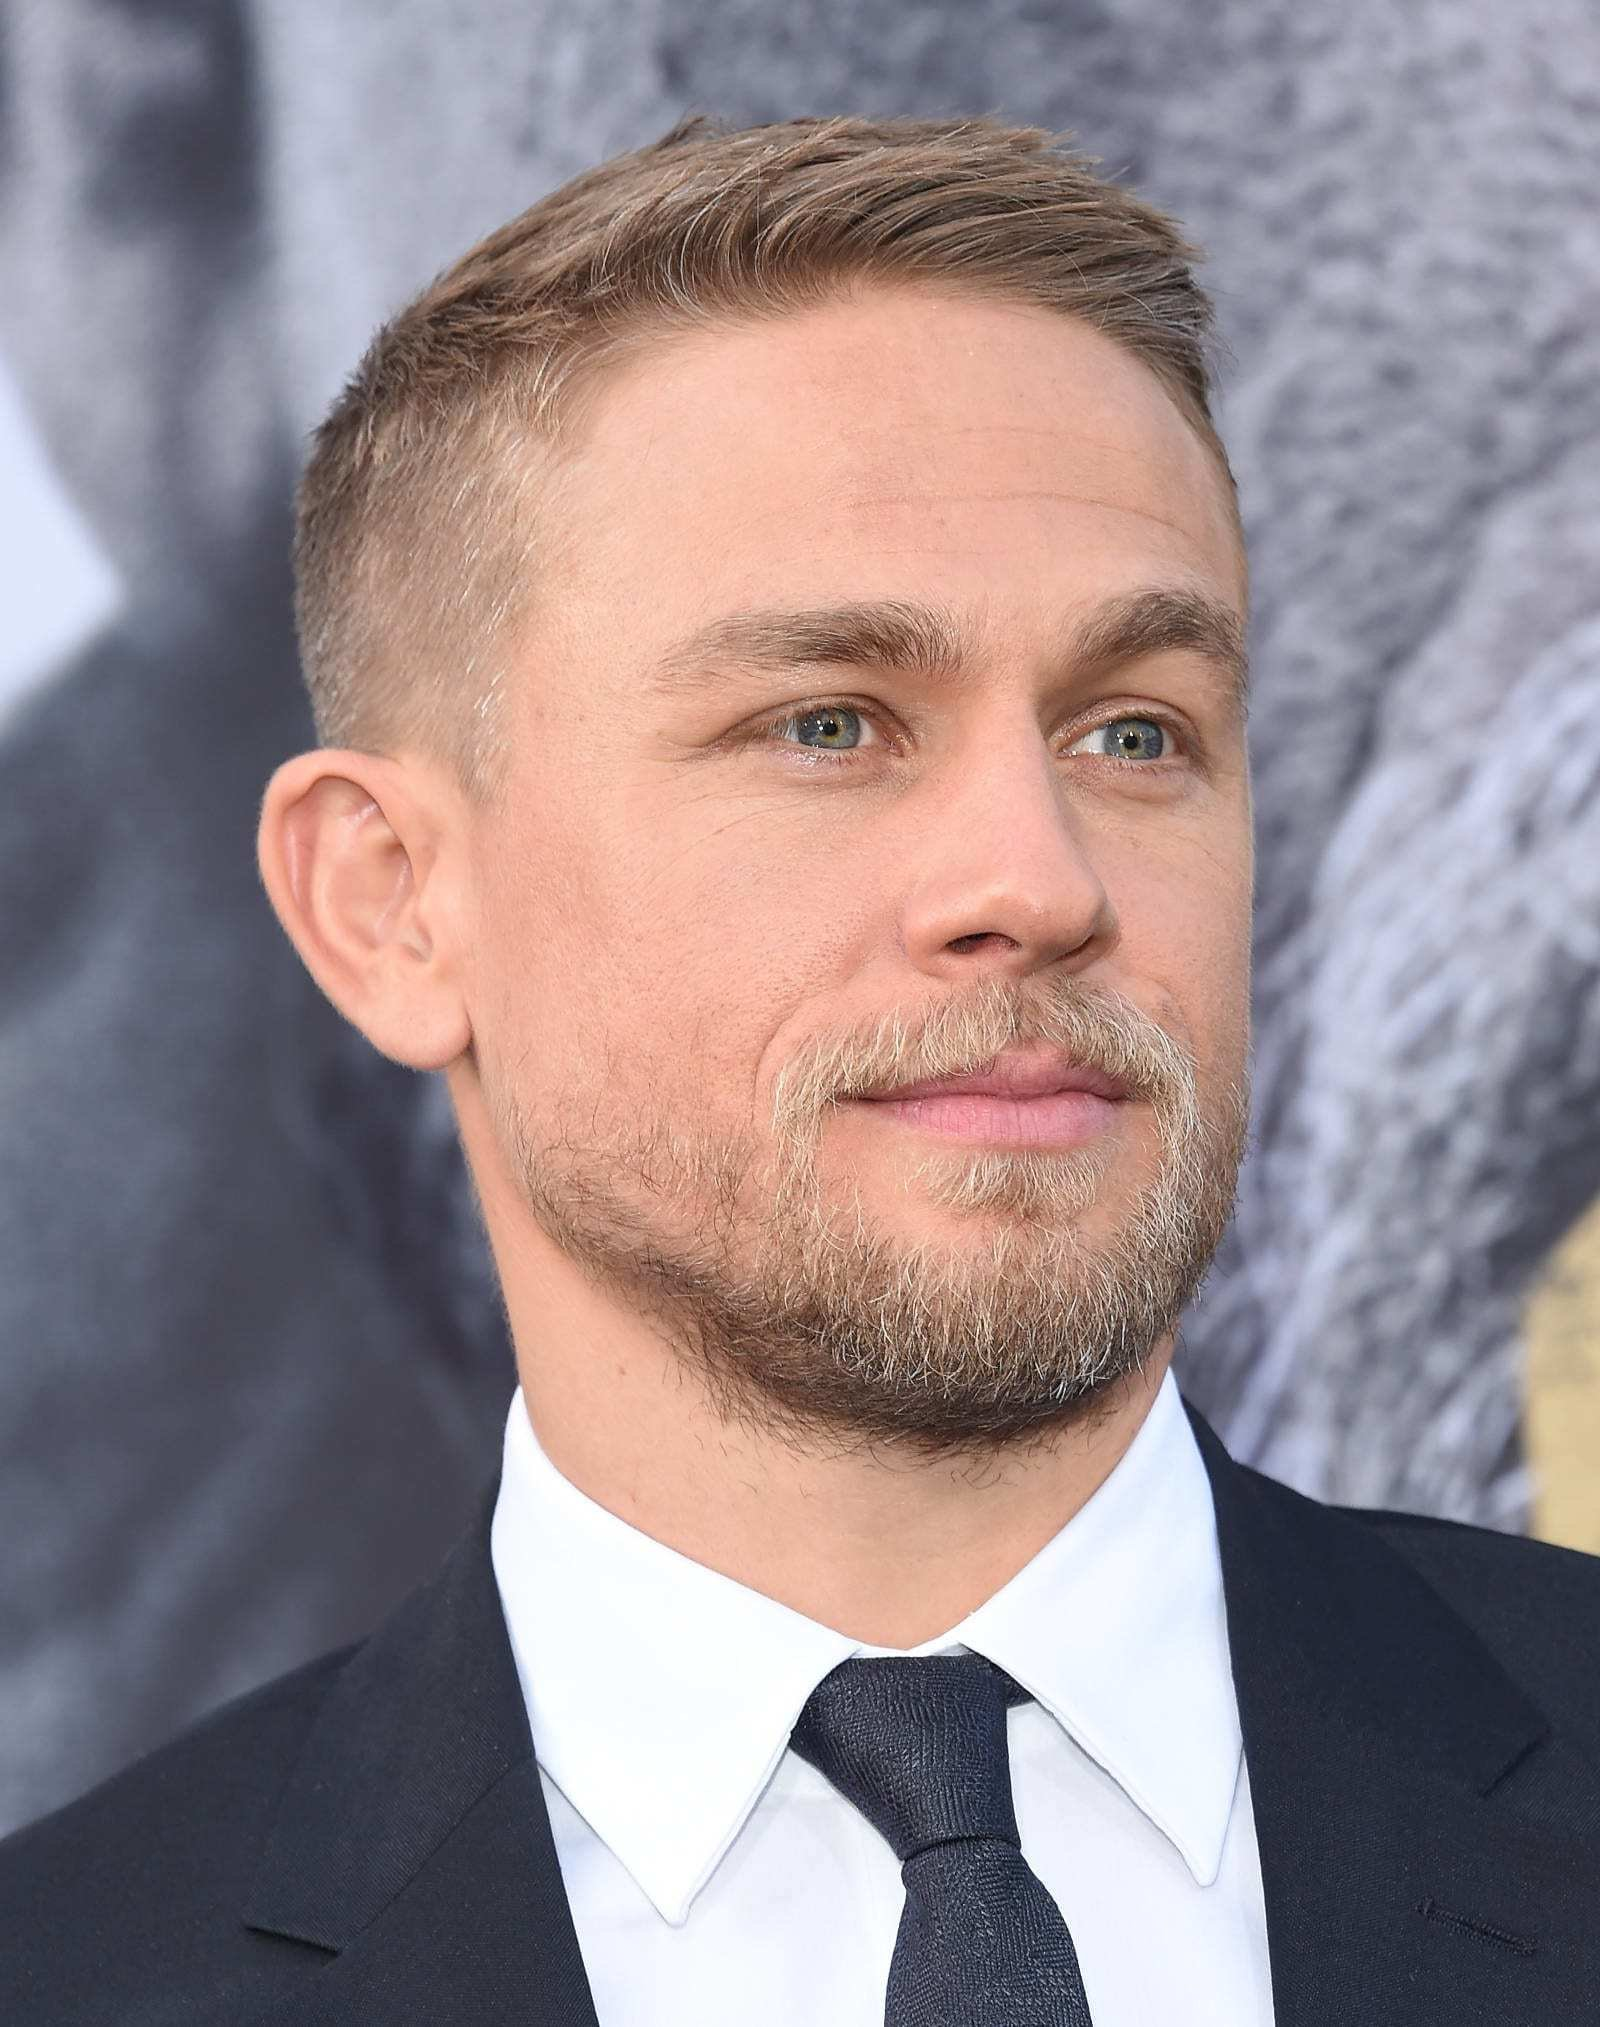 The Best Best 50 Blonde Hairstyles For Men To Try In 2019 Pictures